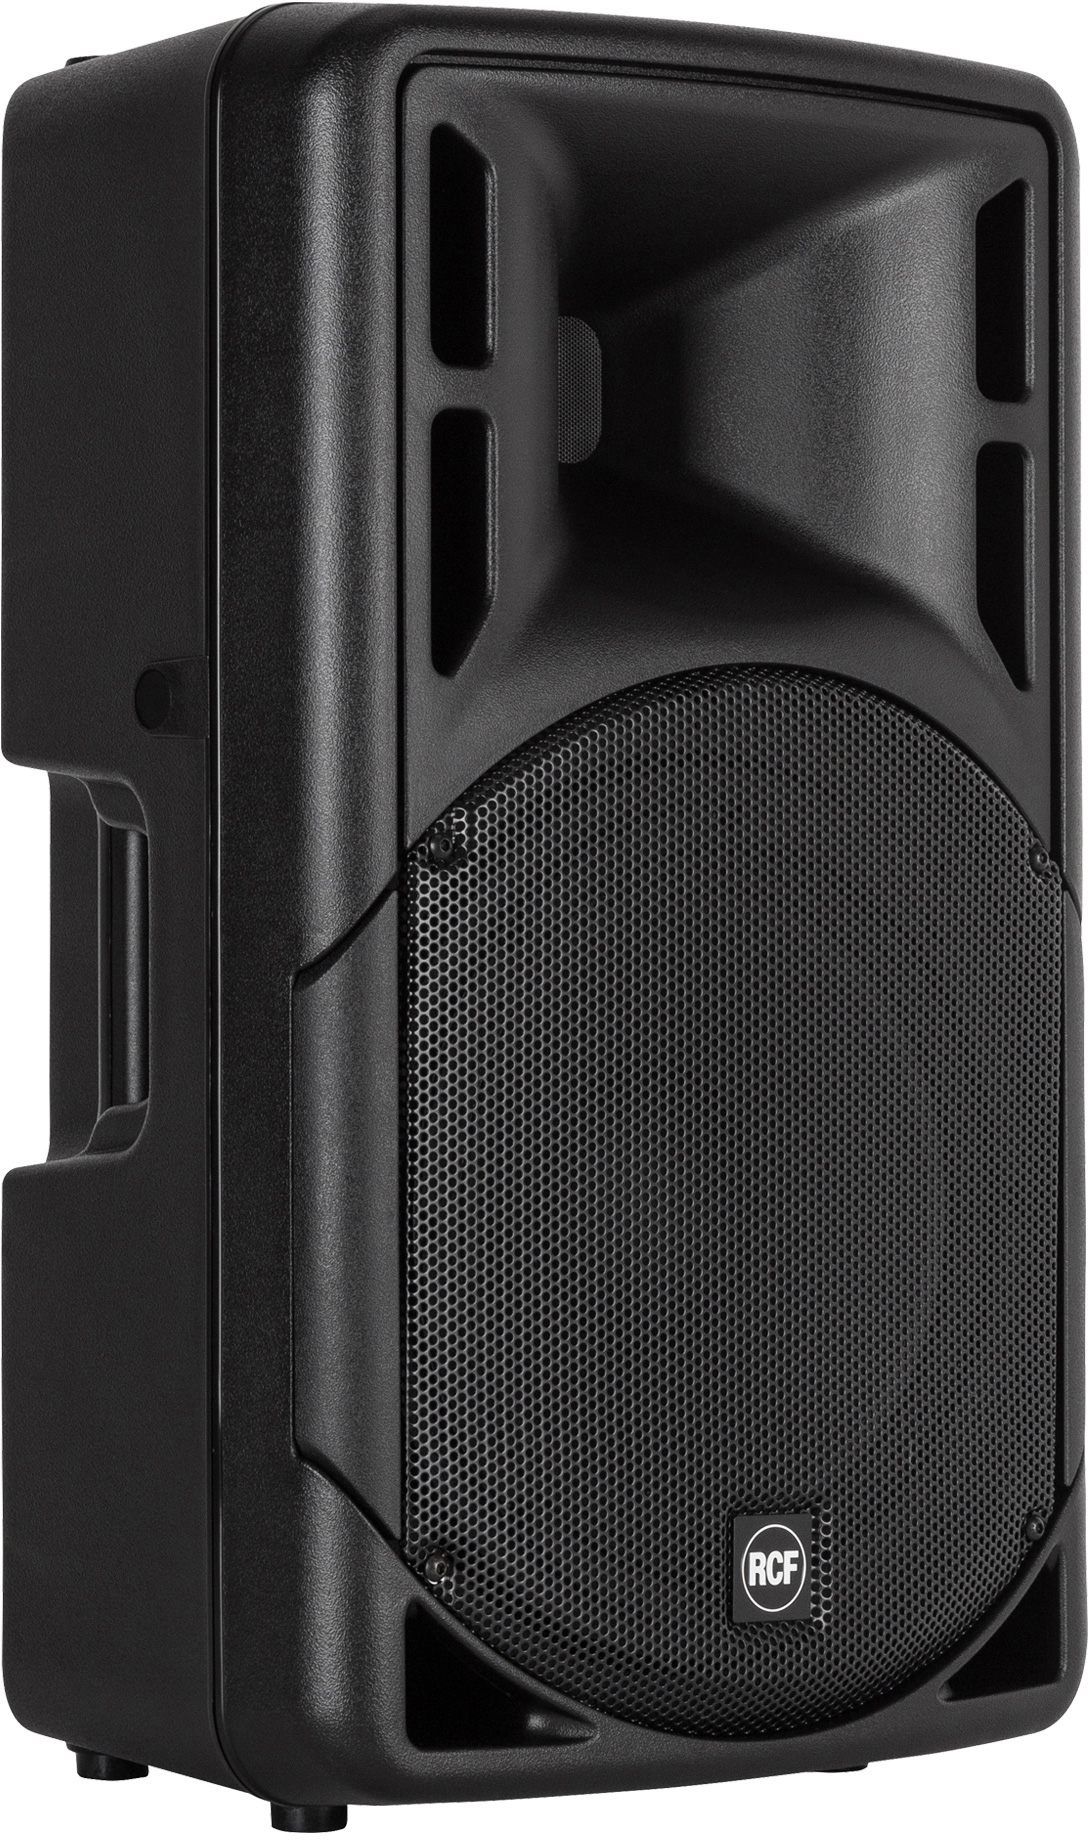 RCF ART-312A-MK4 800W Active Two-Way Loudspeaker with 12 Inch Woofer & 2 5  Inch Highpower Voicecoil - 128dB Max SPL